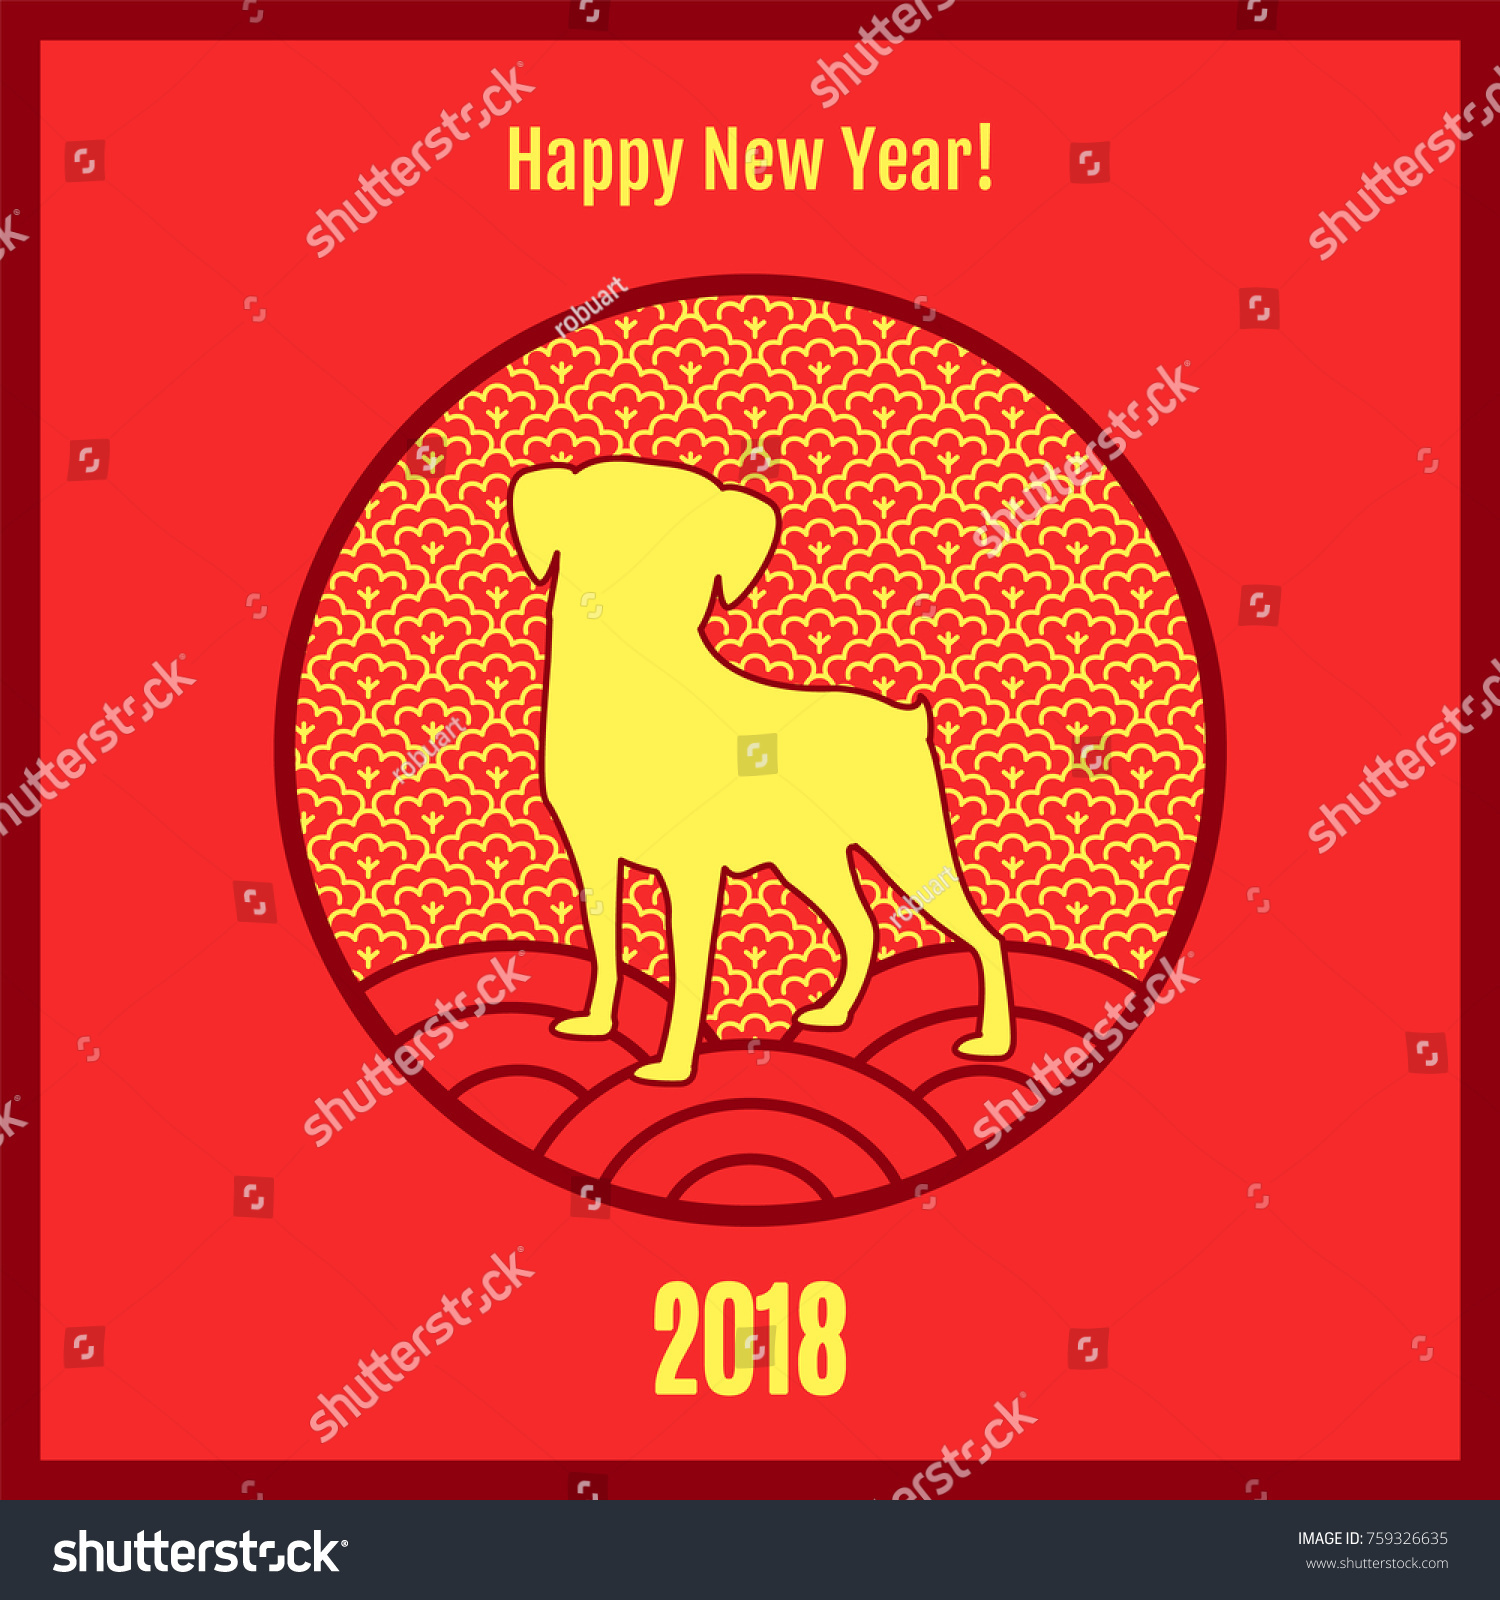 Happy New Year 2018 Poster Depicting Stock Vector Royalty Free 759326635